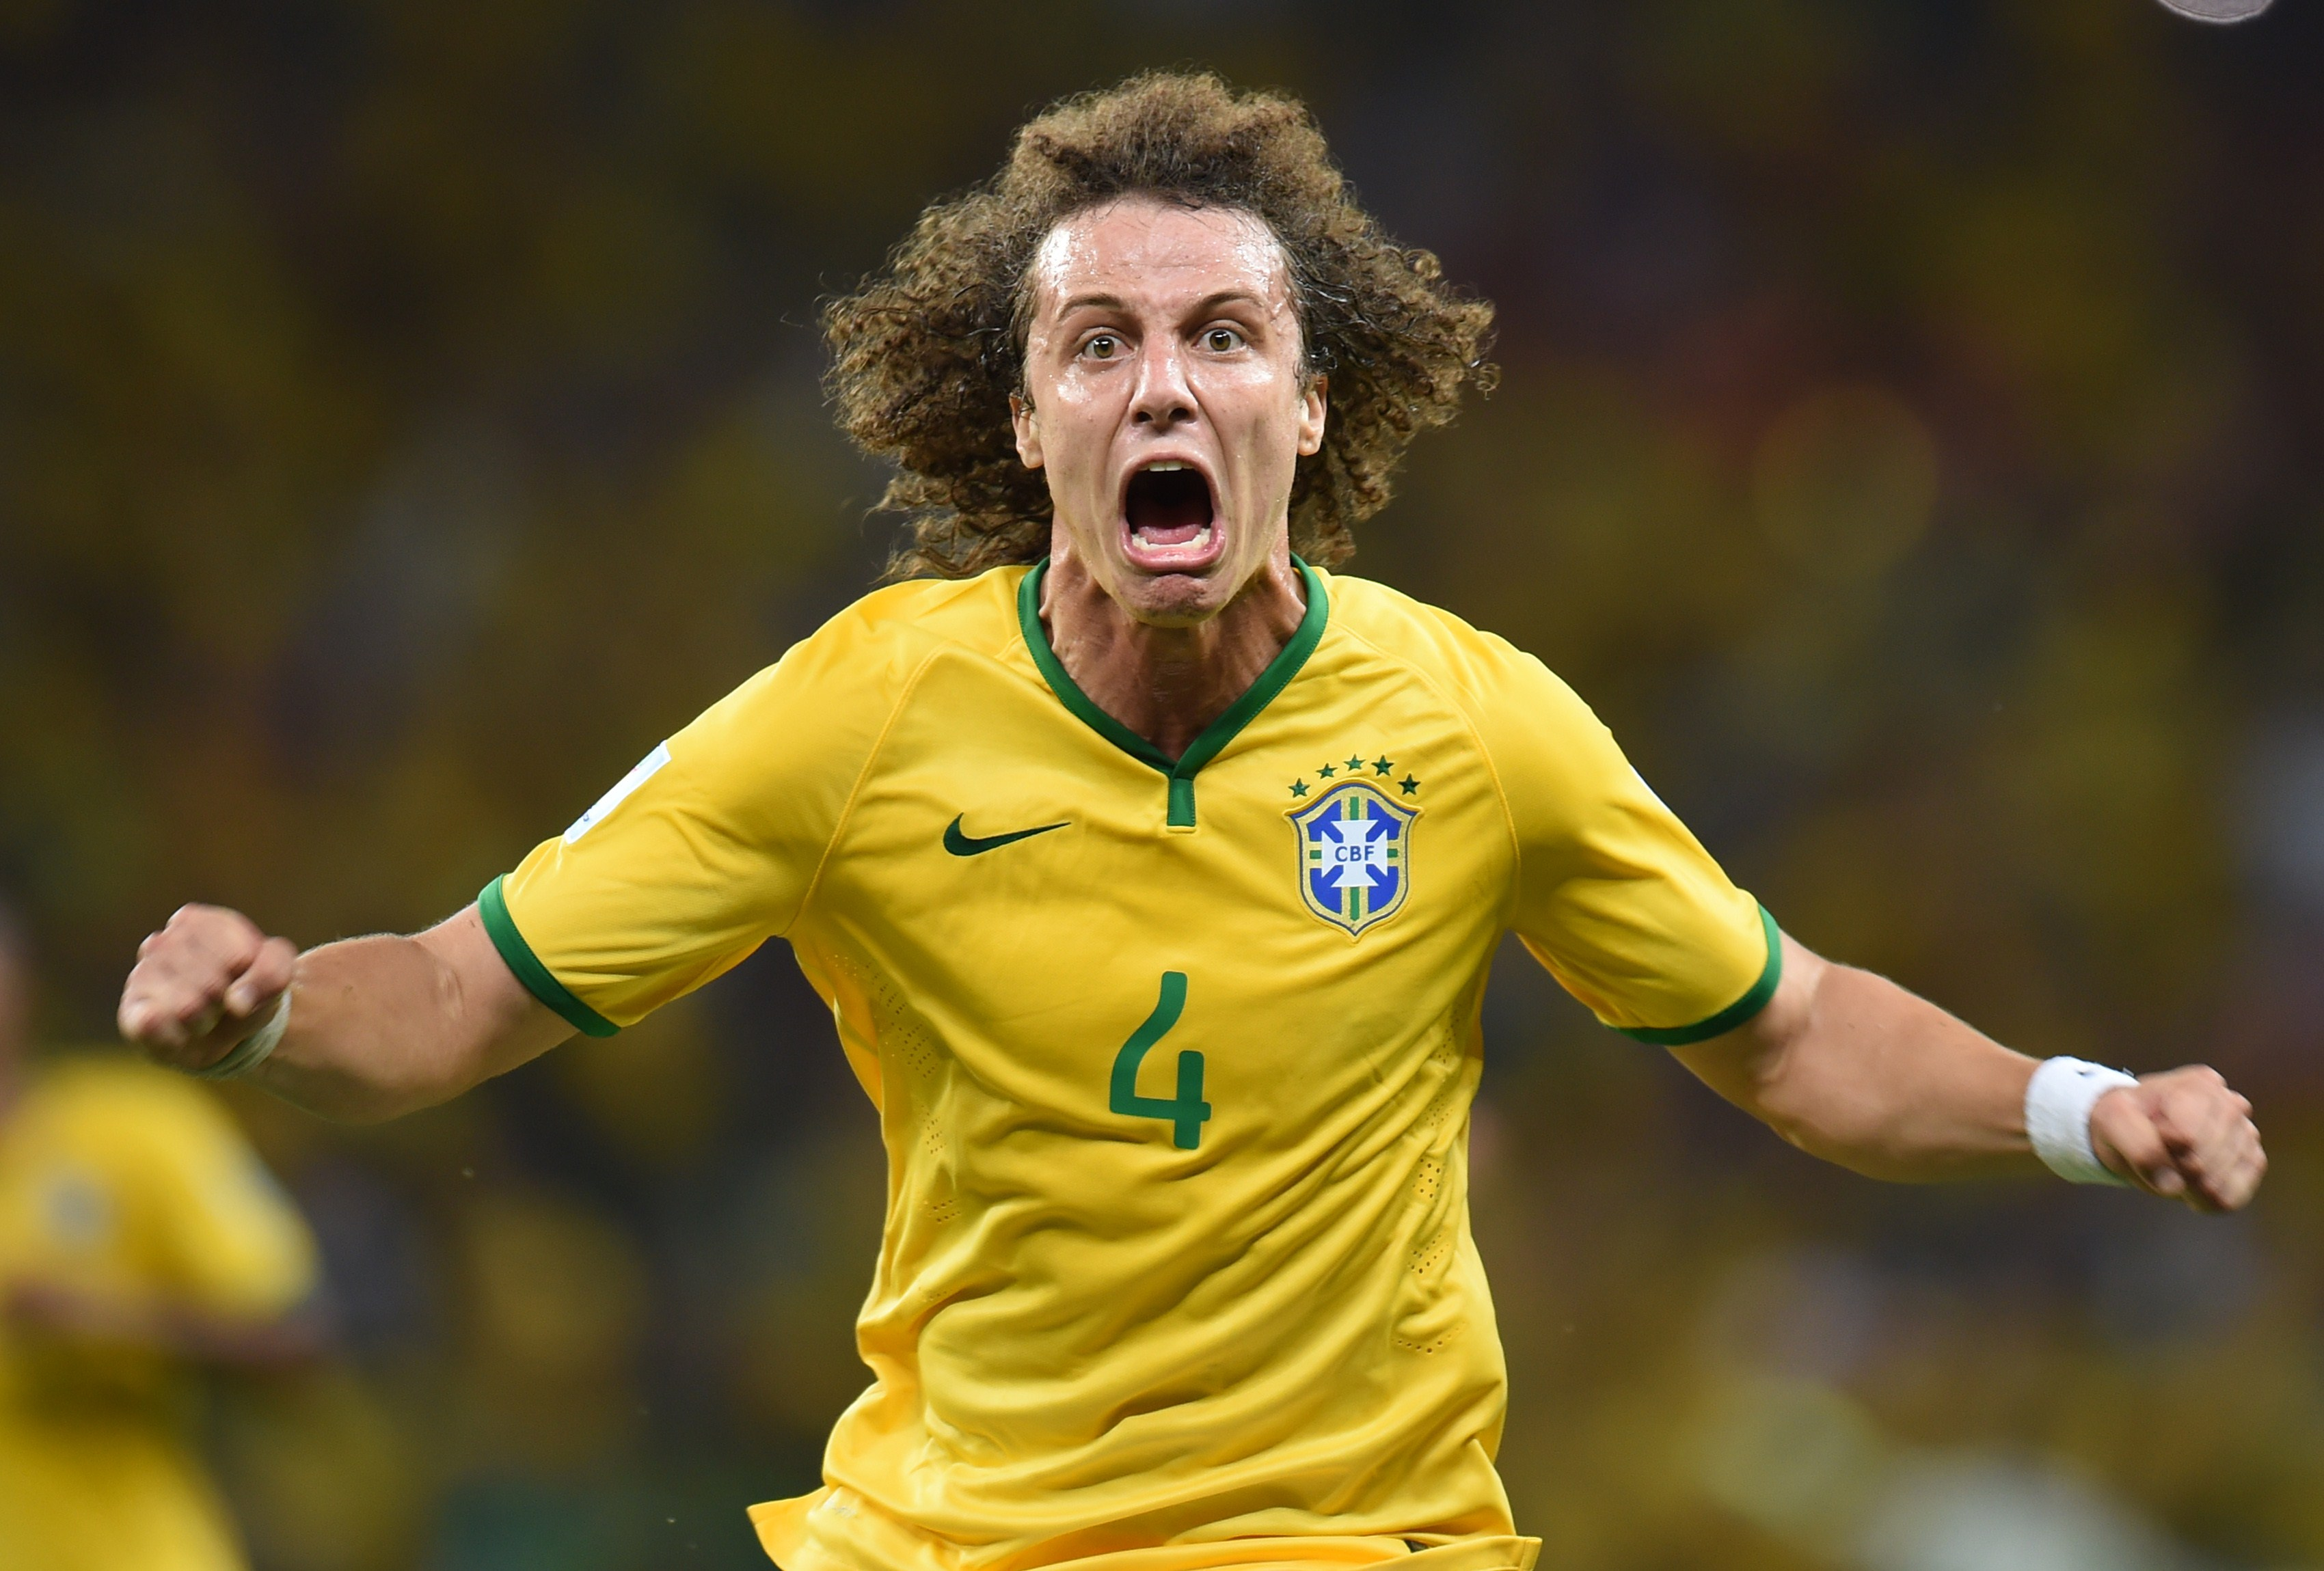 2014 FIFA World Cup: Brazil advances past Colombia, Neymar out for semifinals